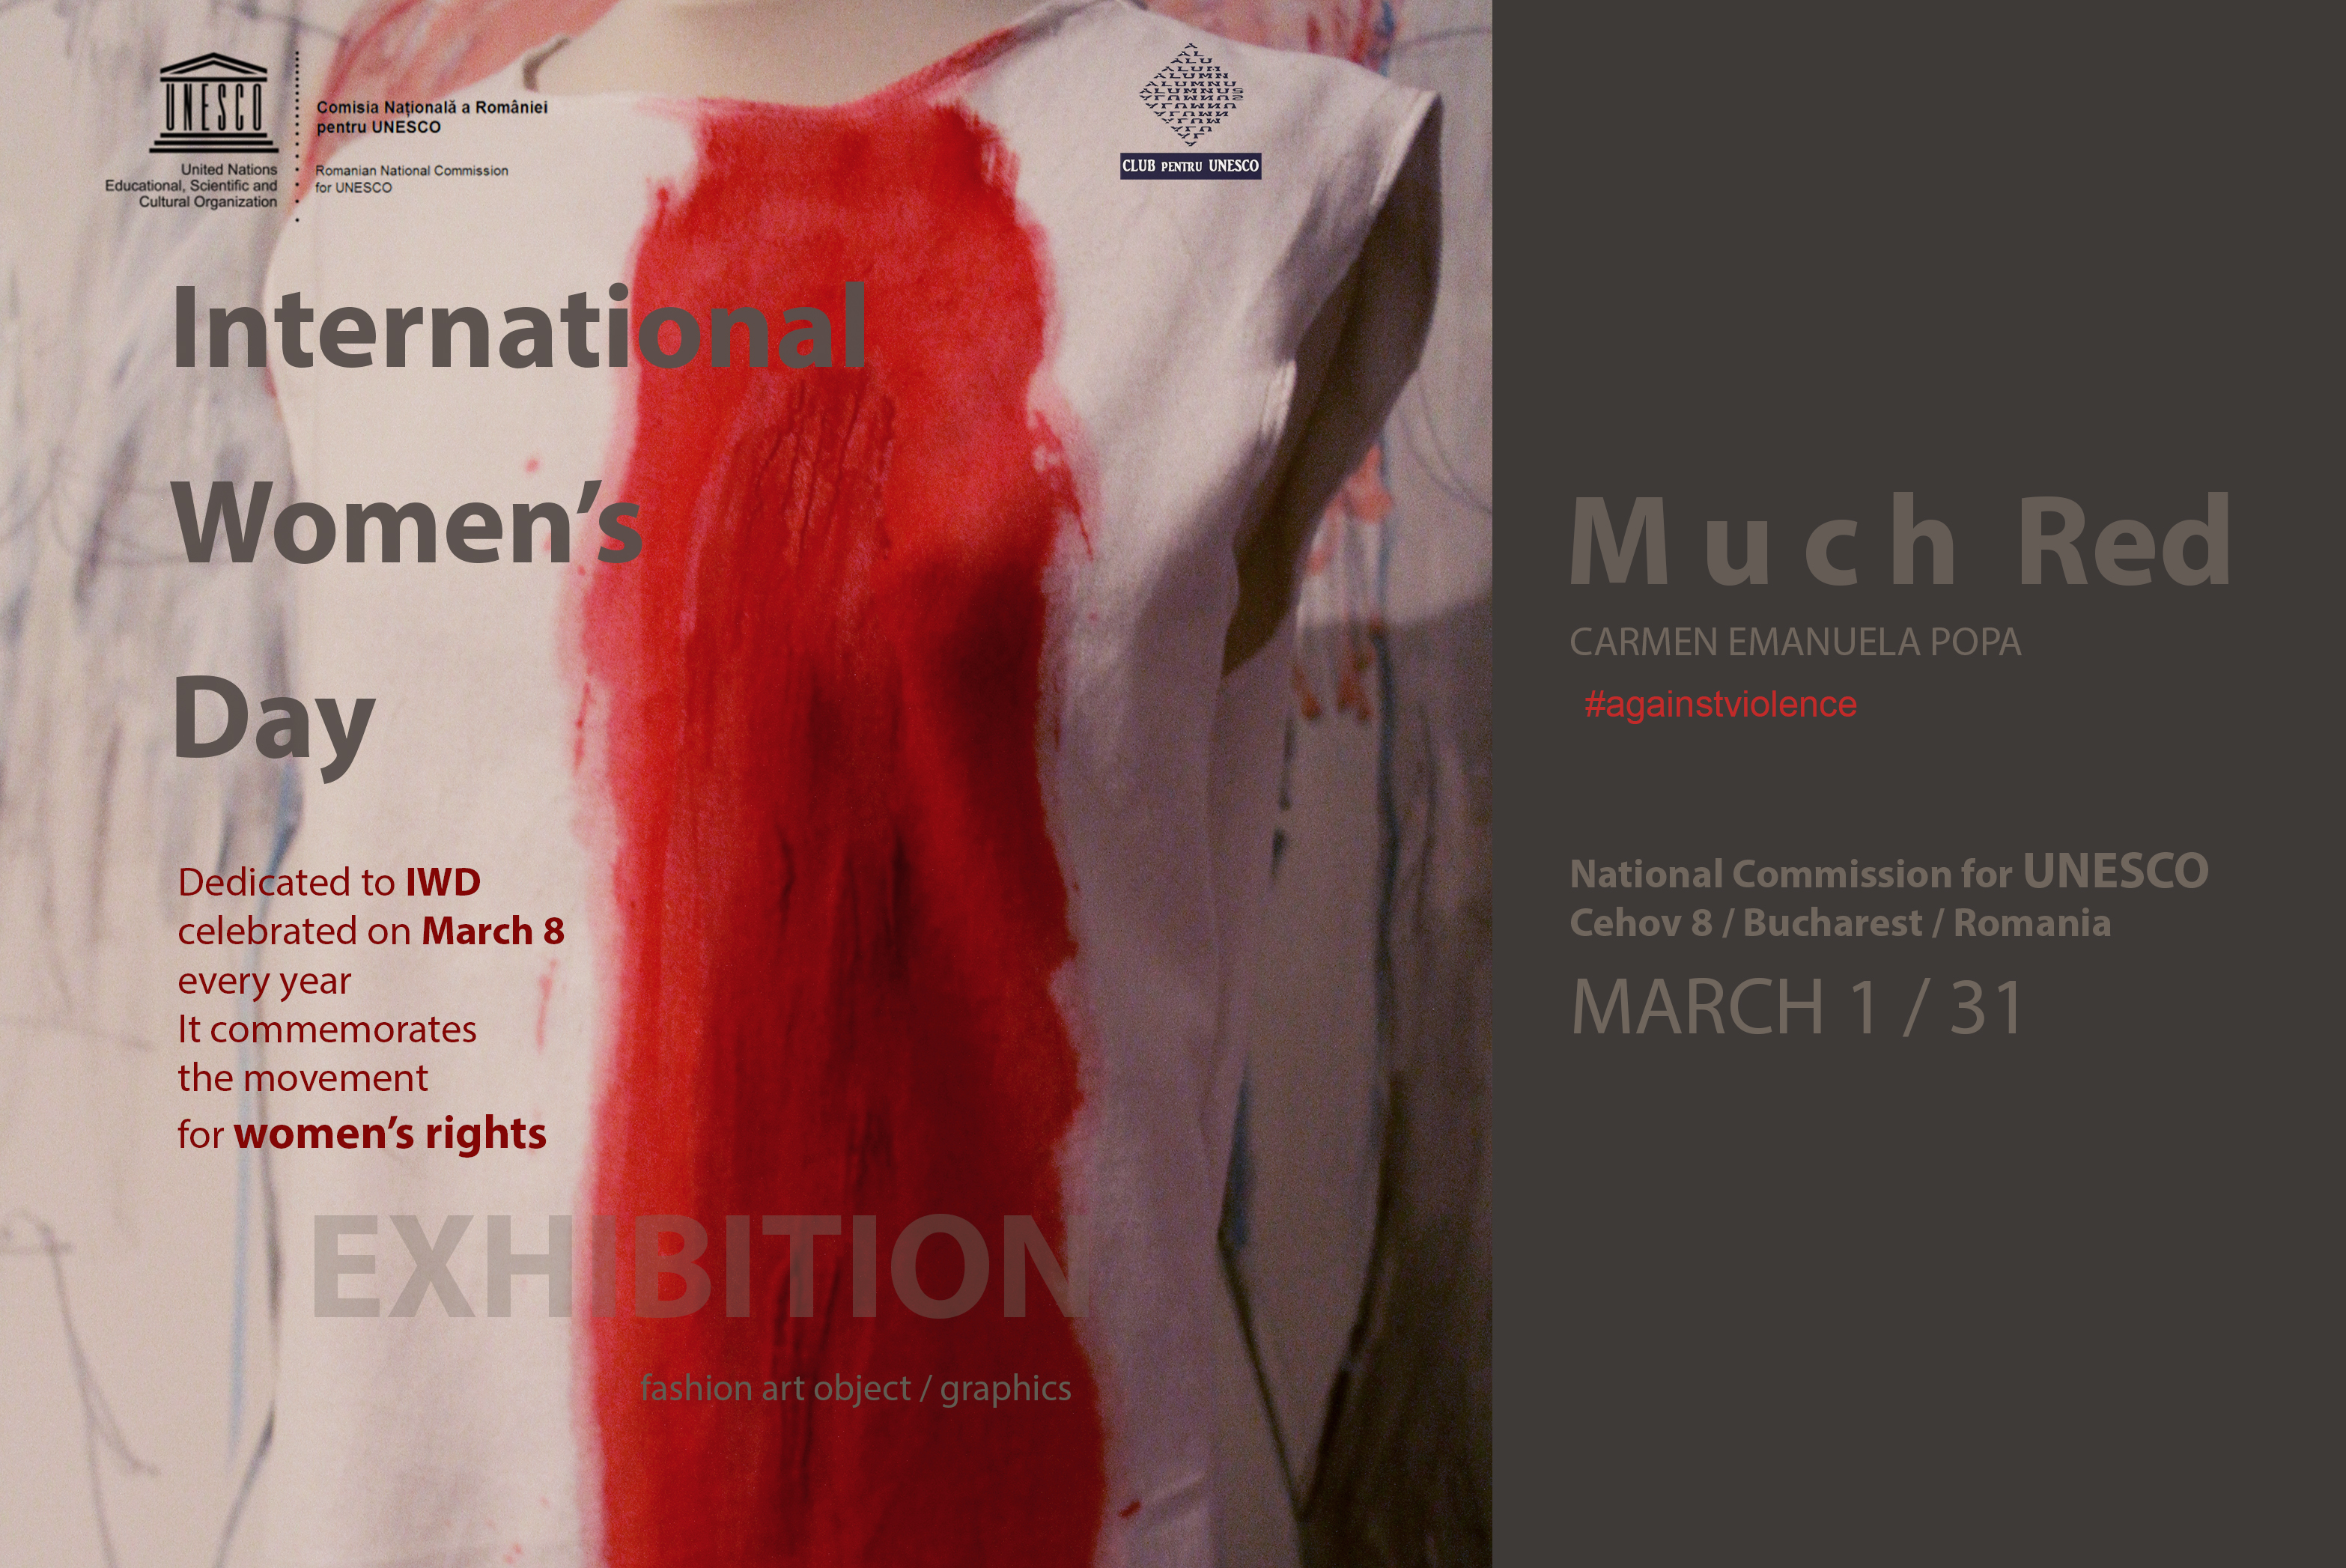 Much Red Exhibition at the National Commission for UNESCO